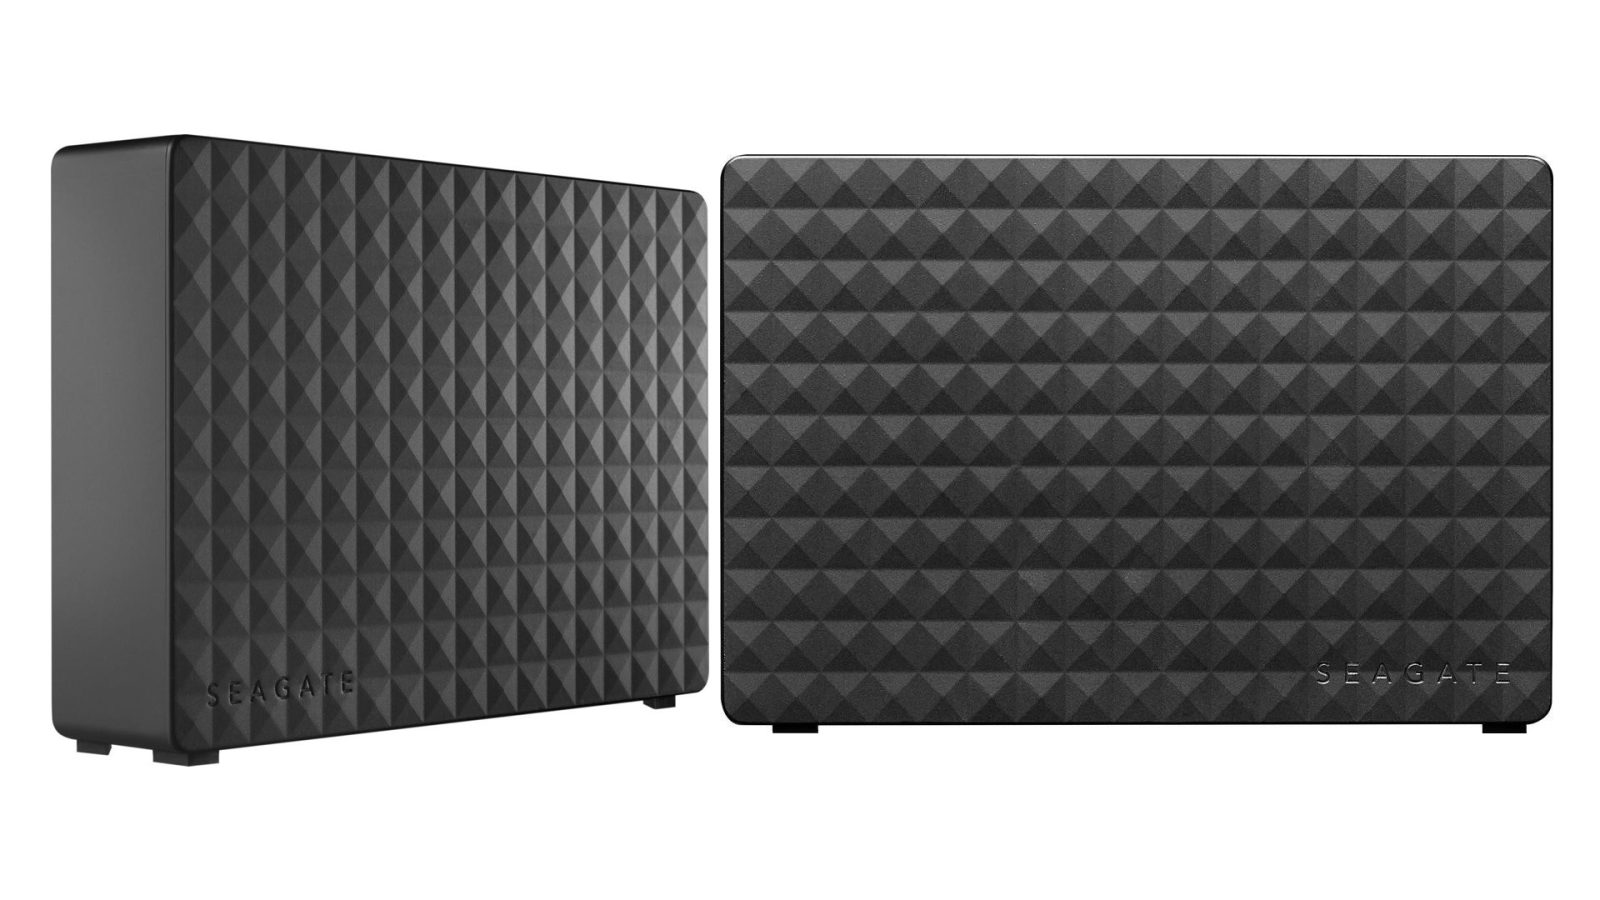 Keep your memories safe on Seagate's 8TB external HDD for $140 (Reg. $190)